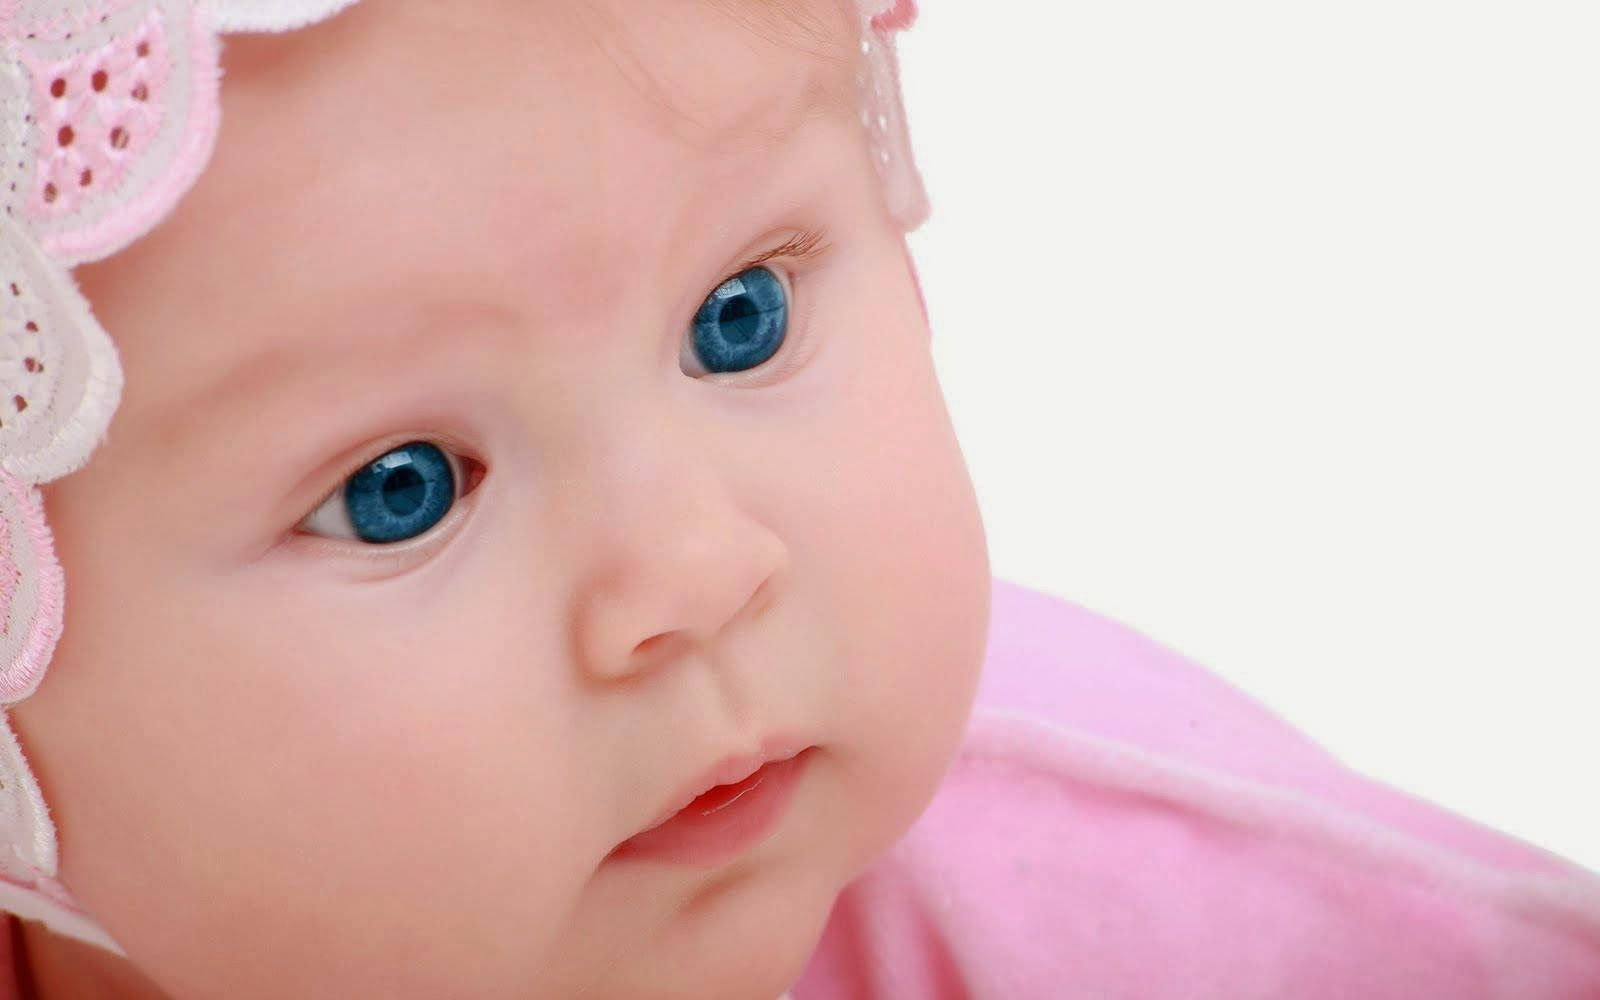 cute babies with blue eyes | nice pics gallery #nicepics | nice pics